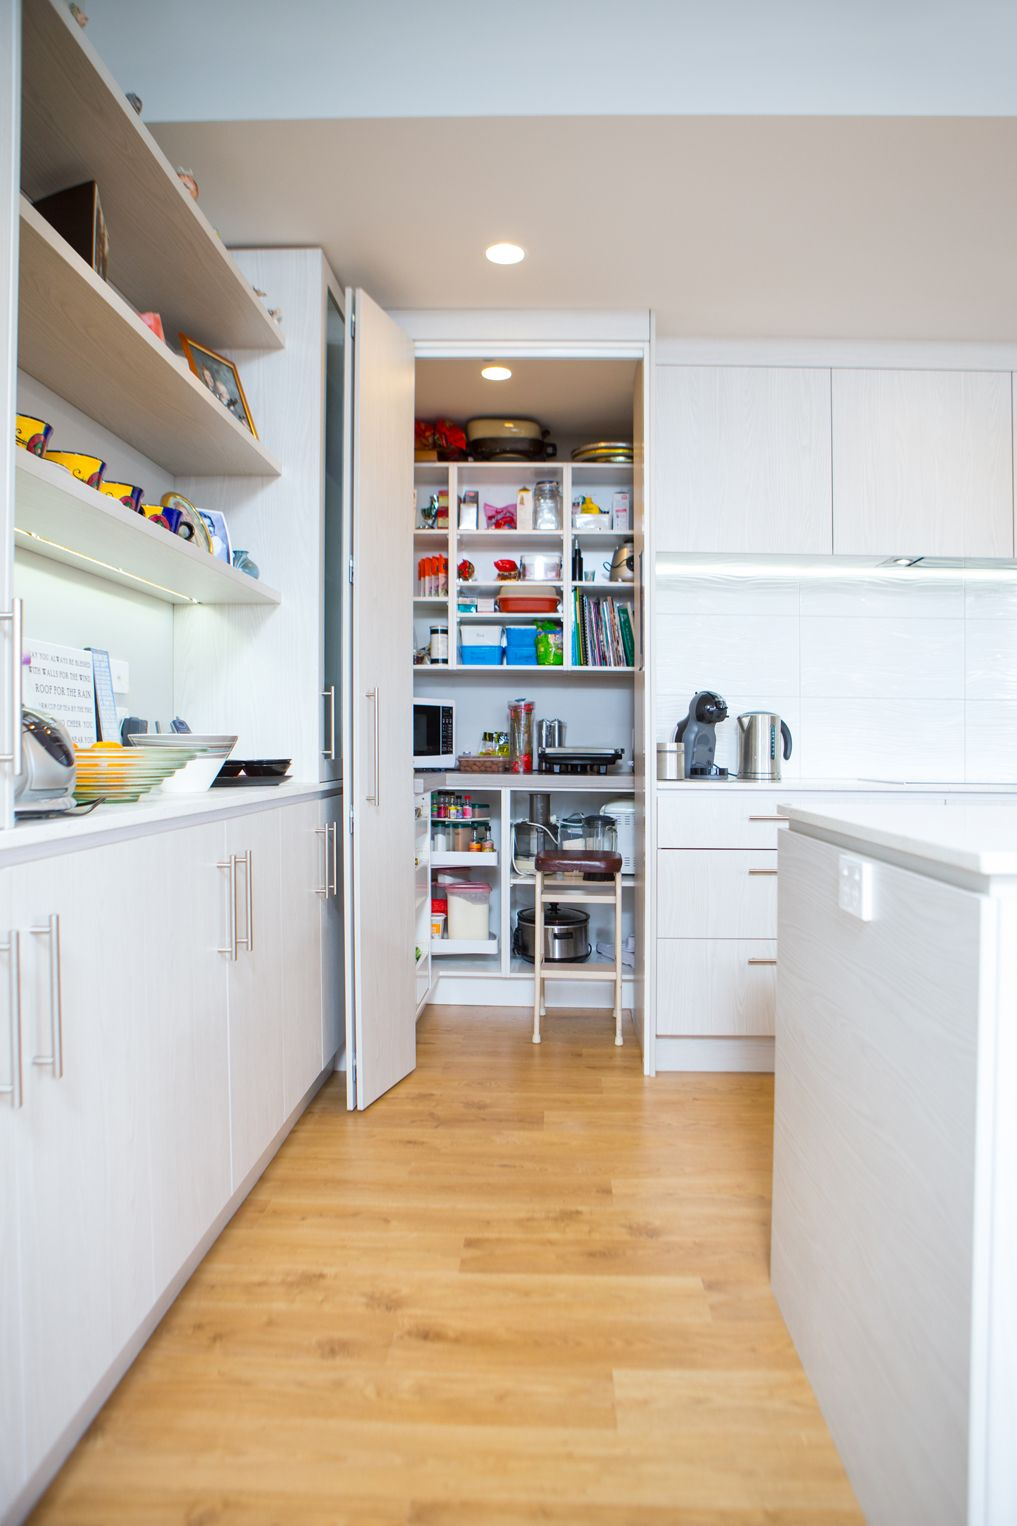 Kitchen 516 By Sally Steer Design Wellington New Zealand Walk In Pantry With Bi Fold Door